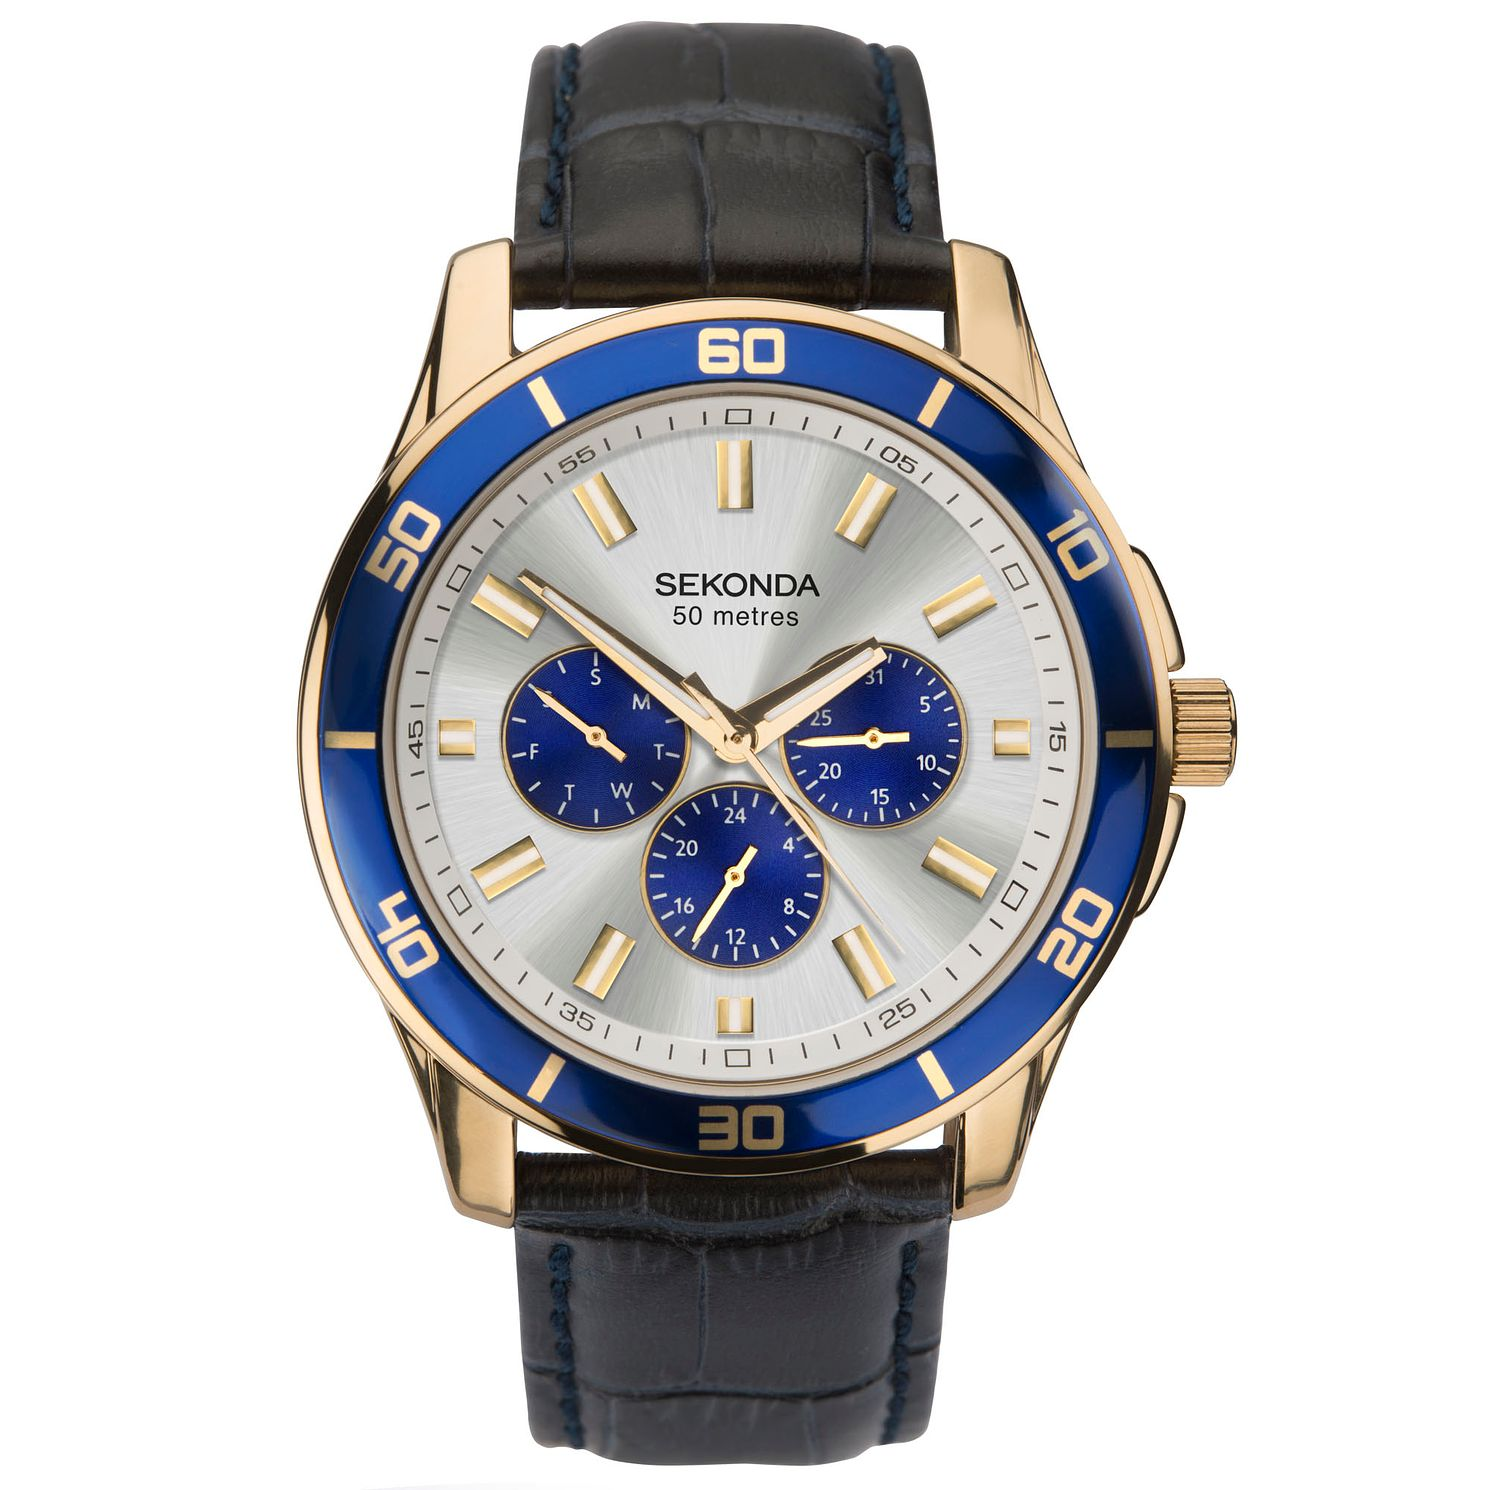 Sekonda Men's Multifunction Blue Leather Strap Watch - Product number 4365739